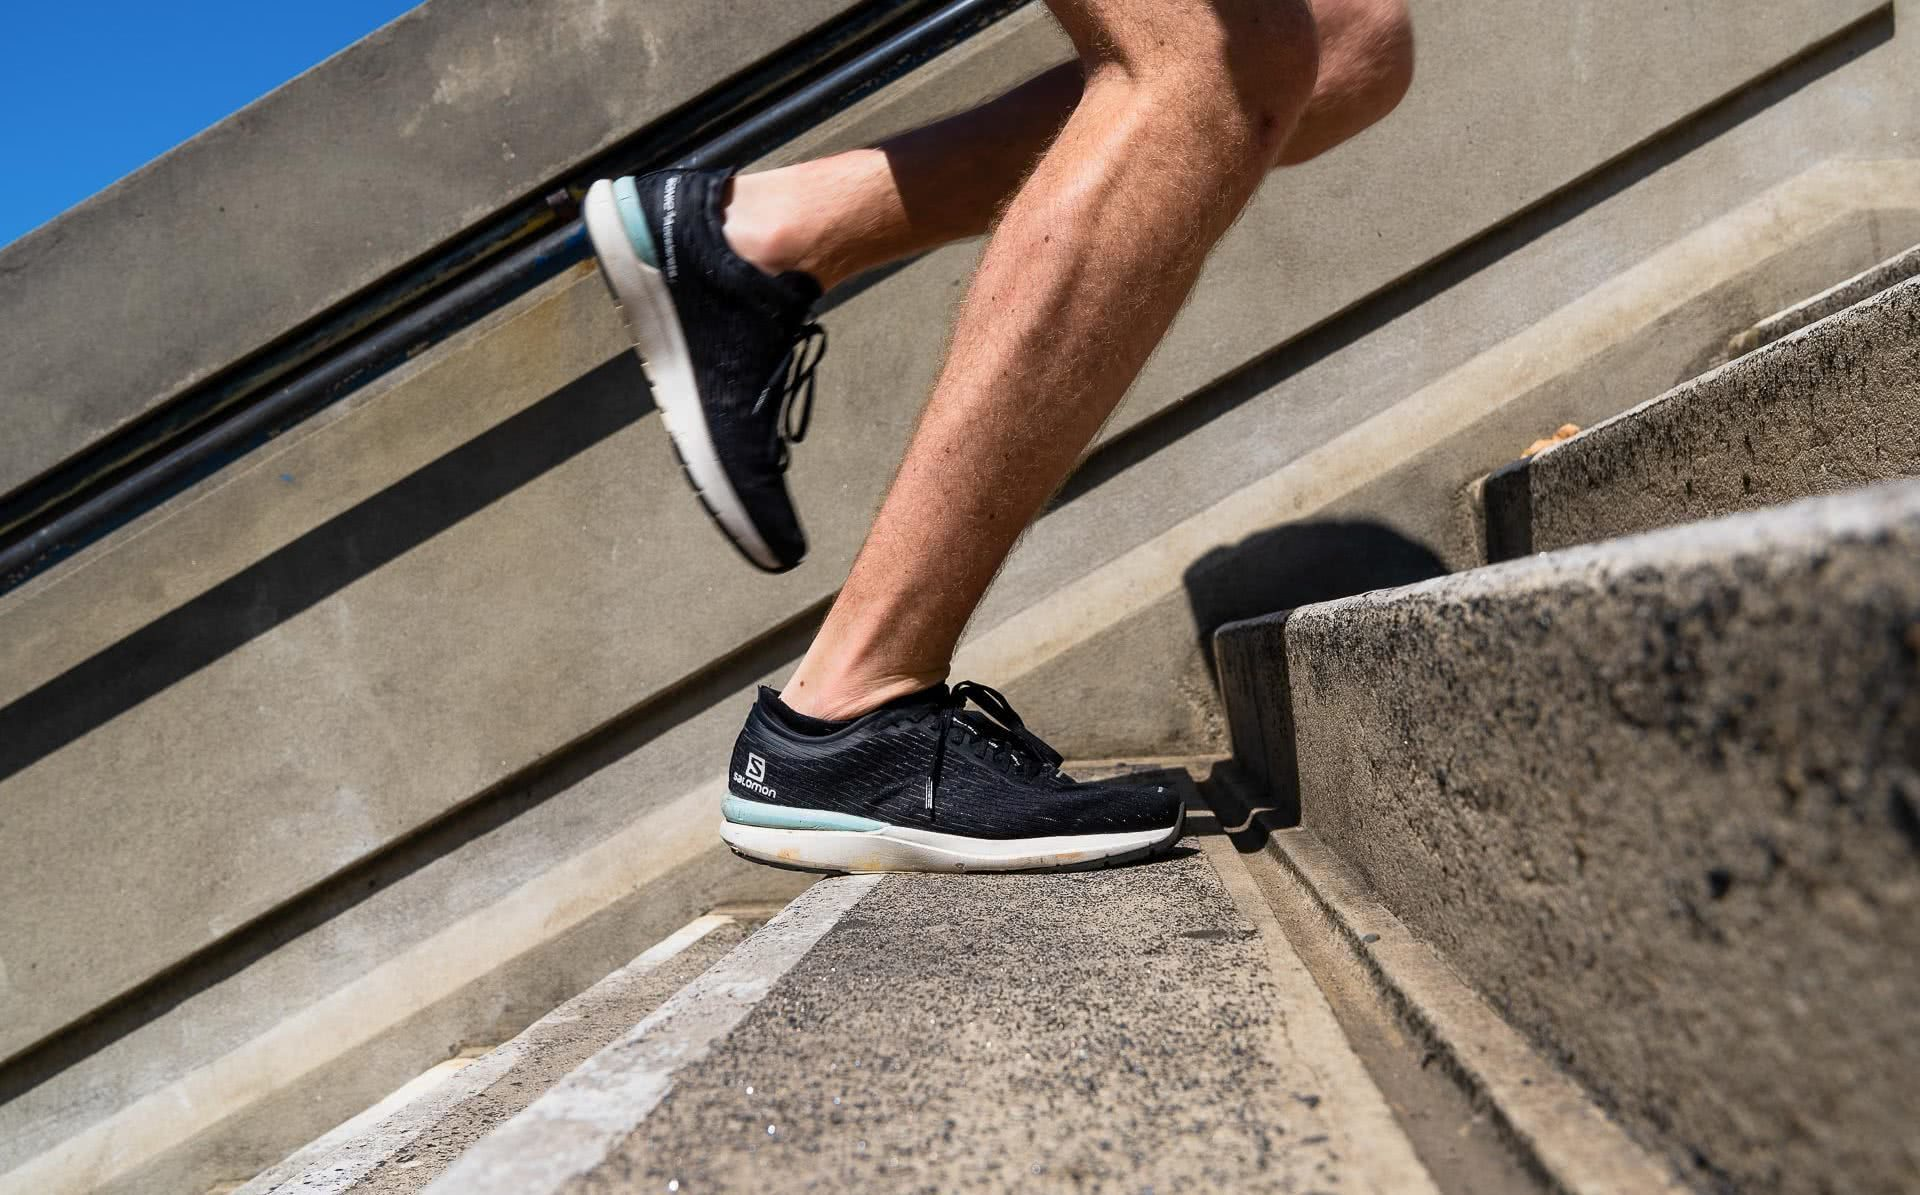 Salomon Sonic 3 Accelerate Gear Review, photo by Jono Tan @thetantrap, review by Tim Ashelford, lavender bay, sydney, nsw, stairs